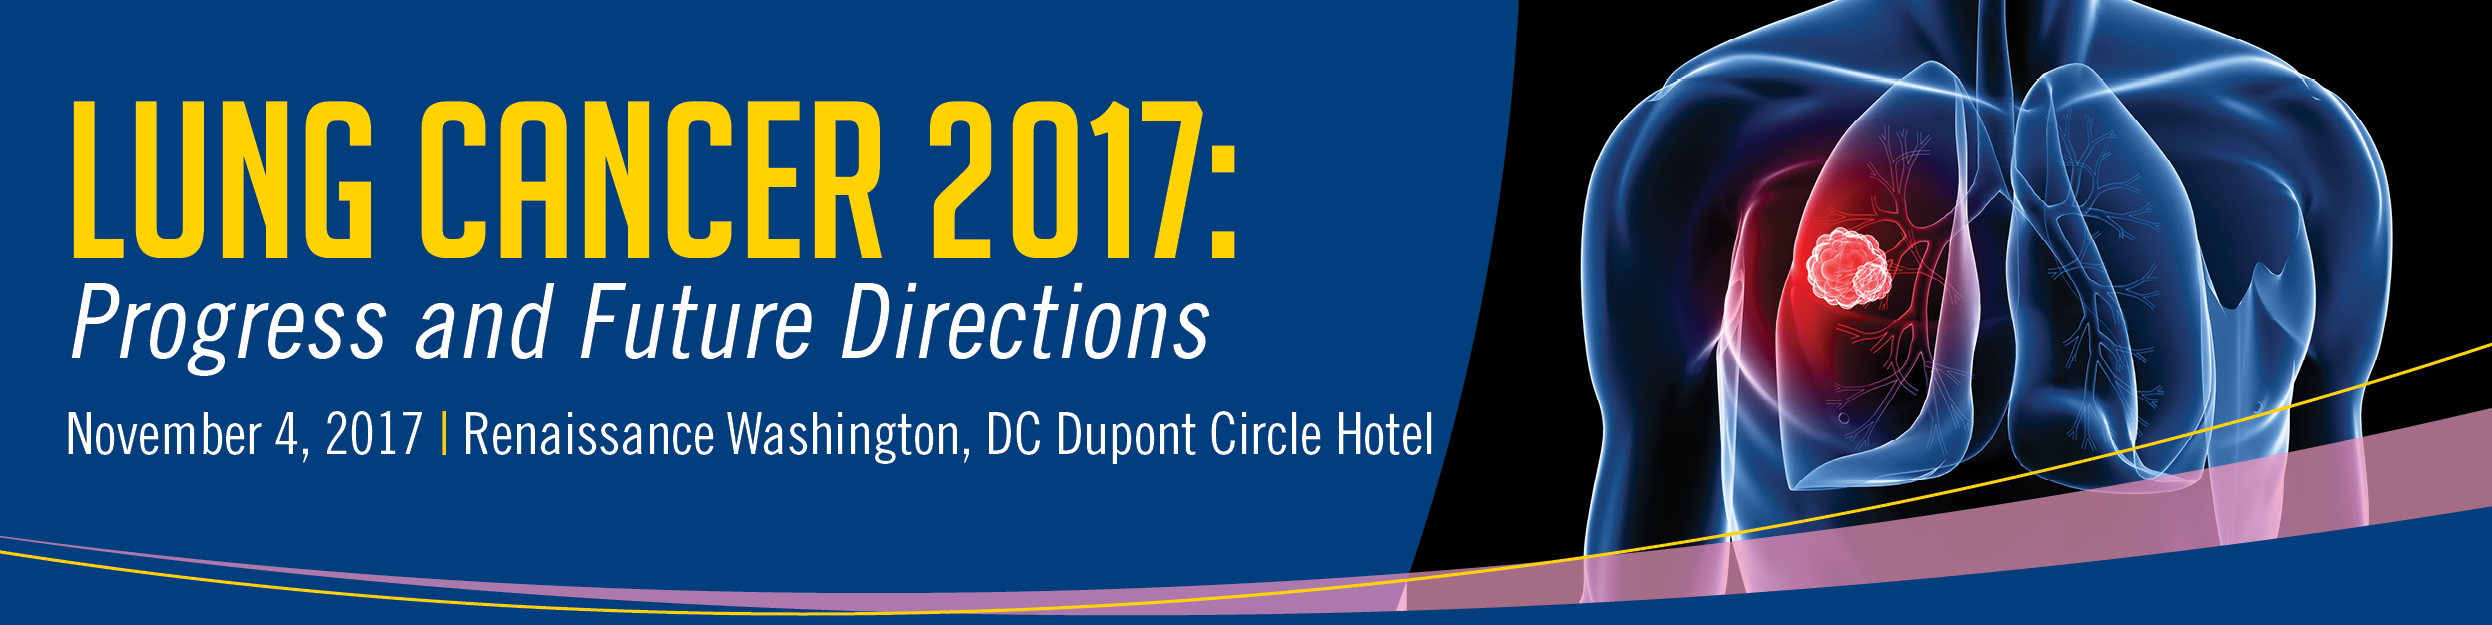 Lung cancer 2017 progress and future directions medstar health lung cancer 2017 progress and future directions banner 1betcityfo Choice Image